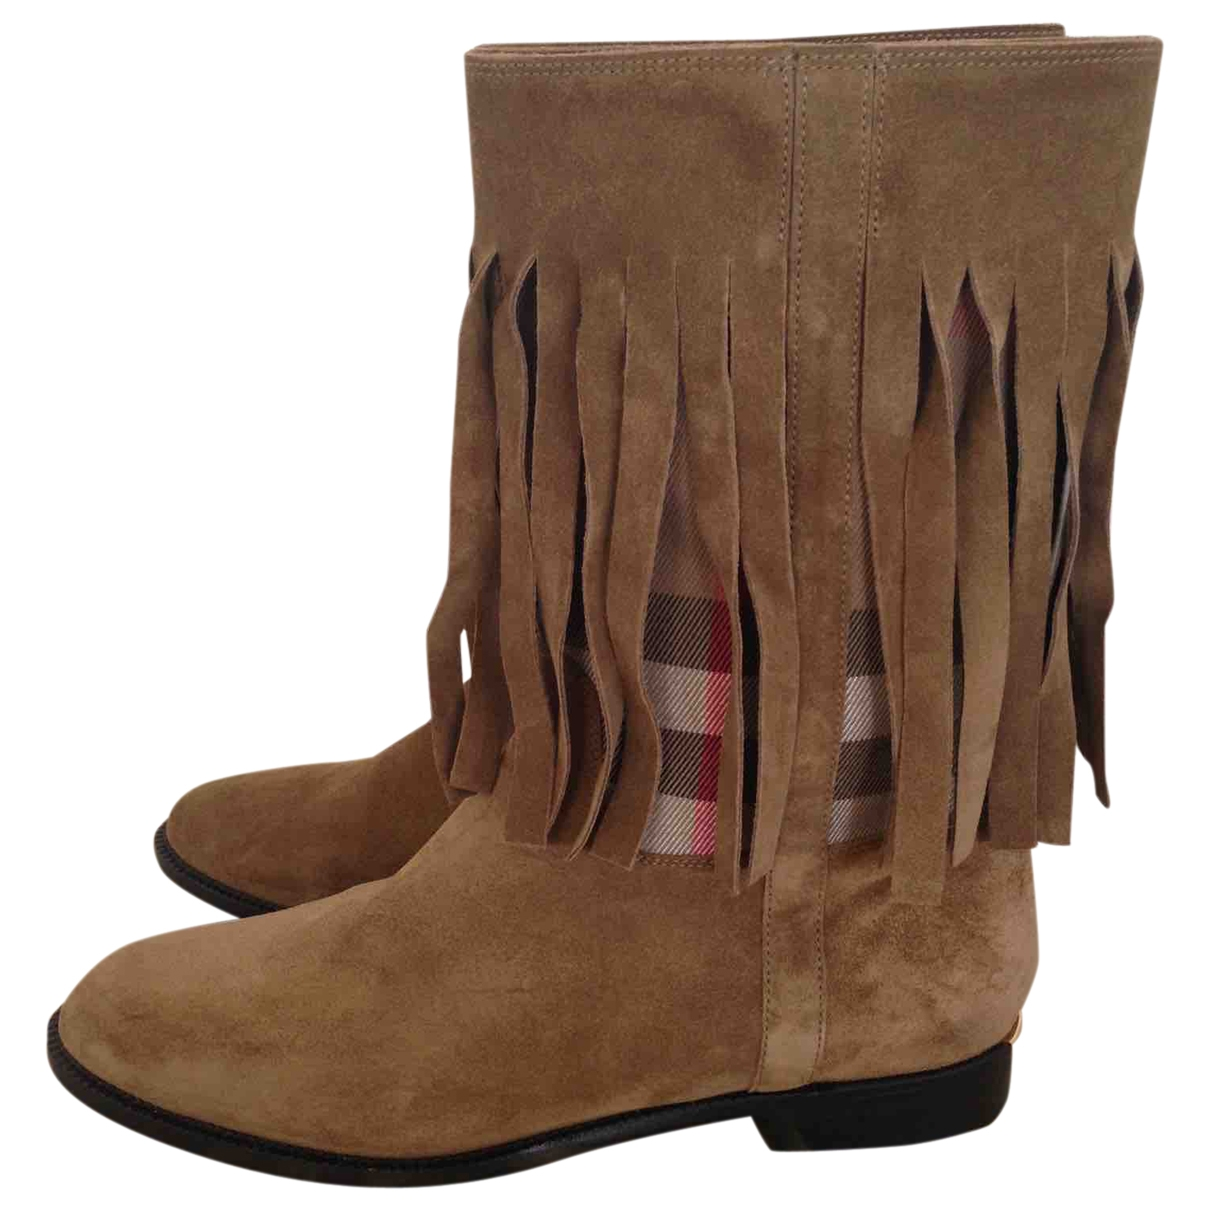 Burberry \N Brown Suede Boots for Women 38 EU